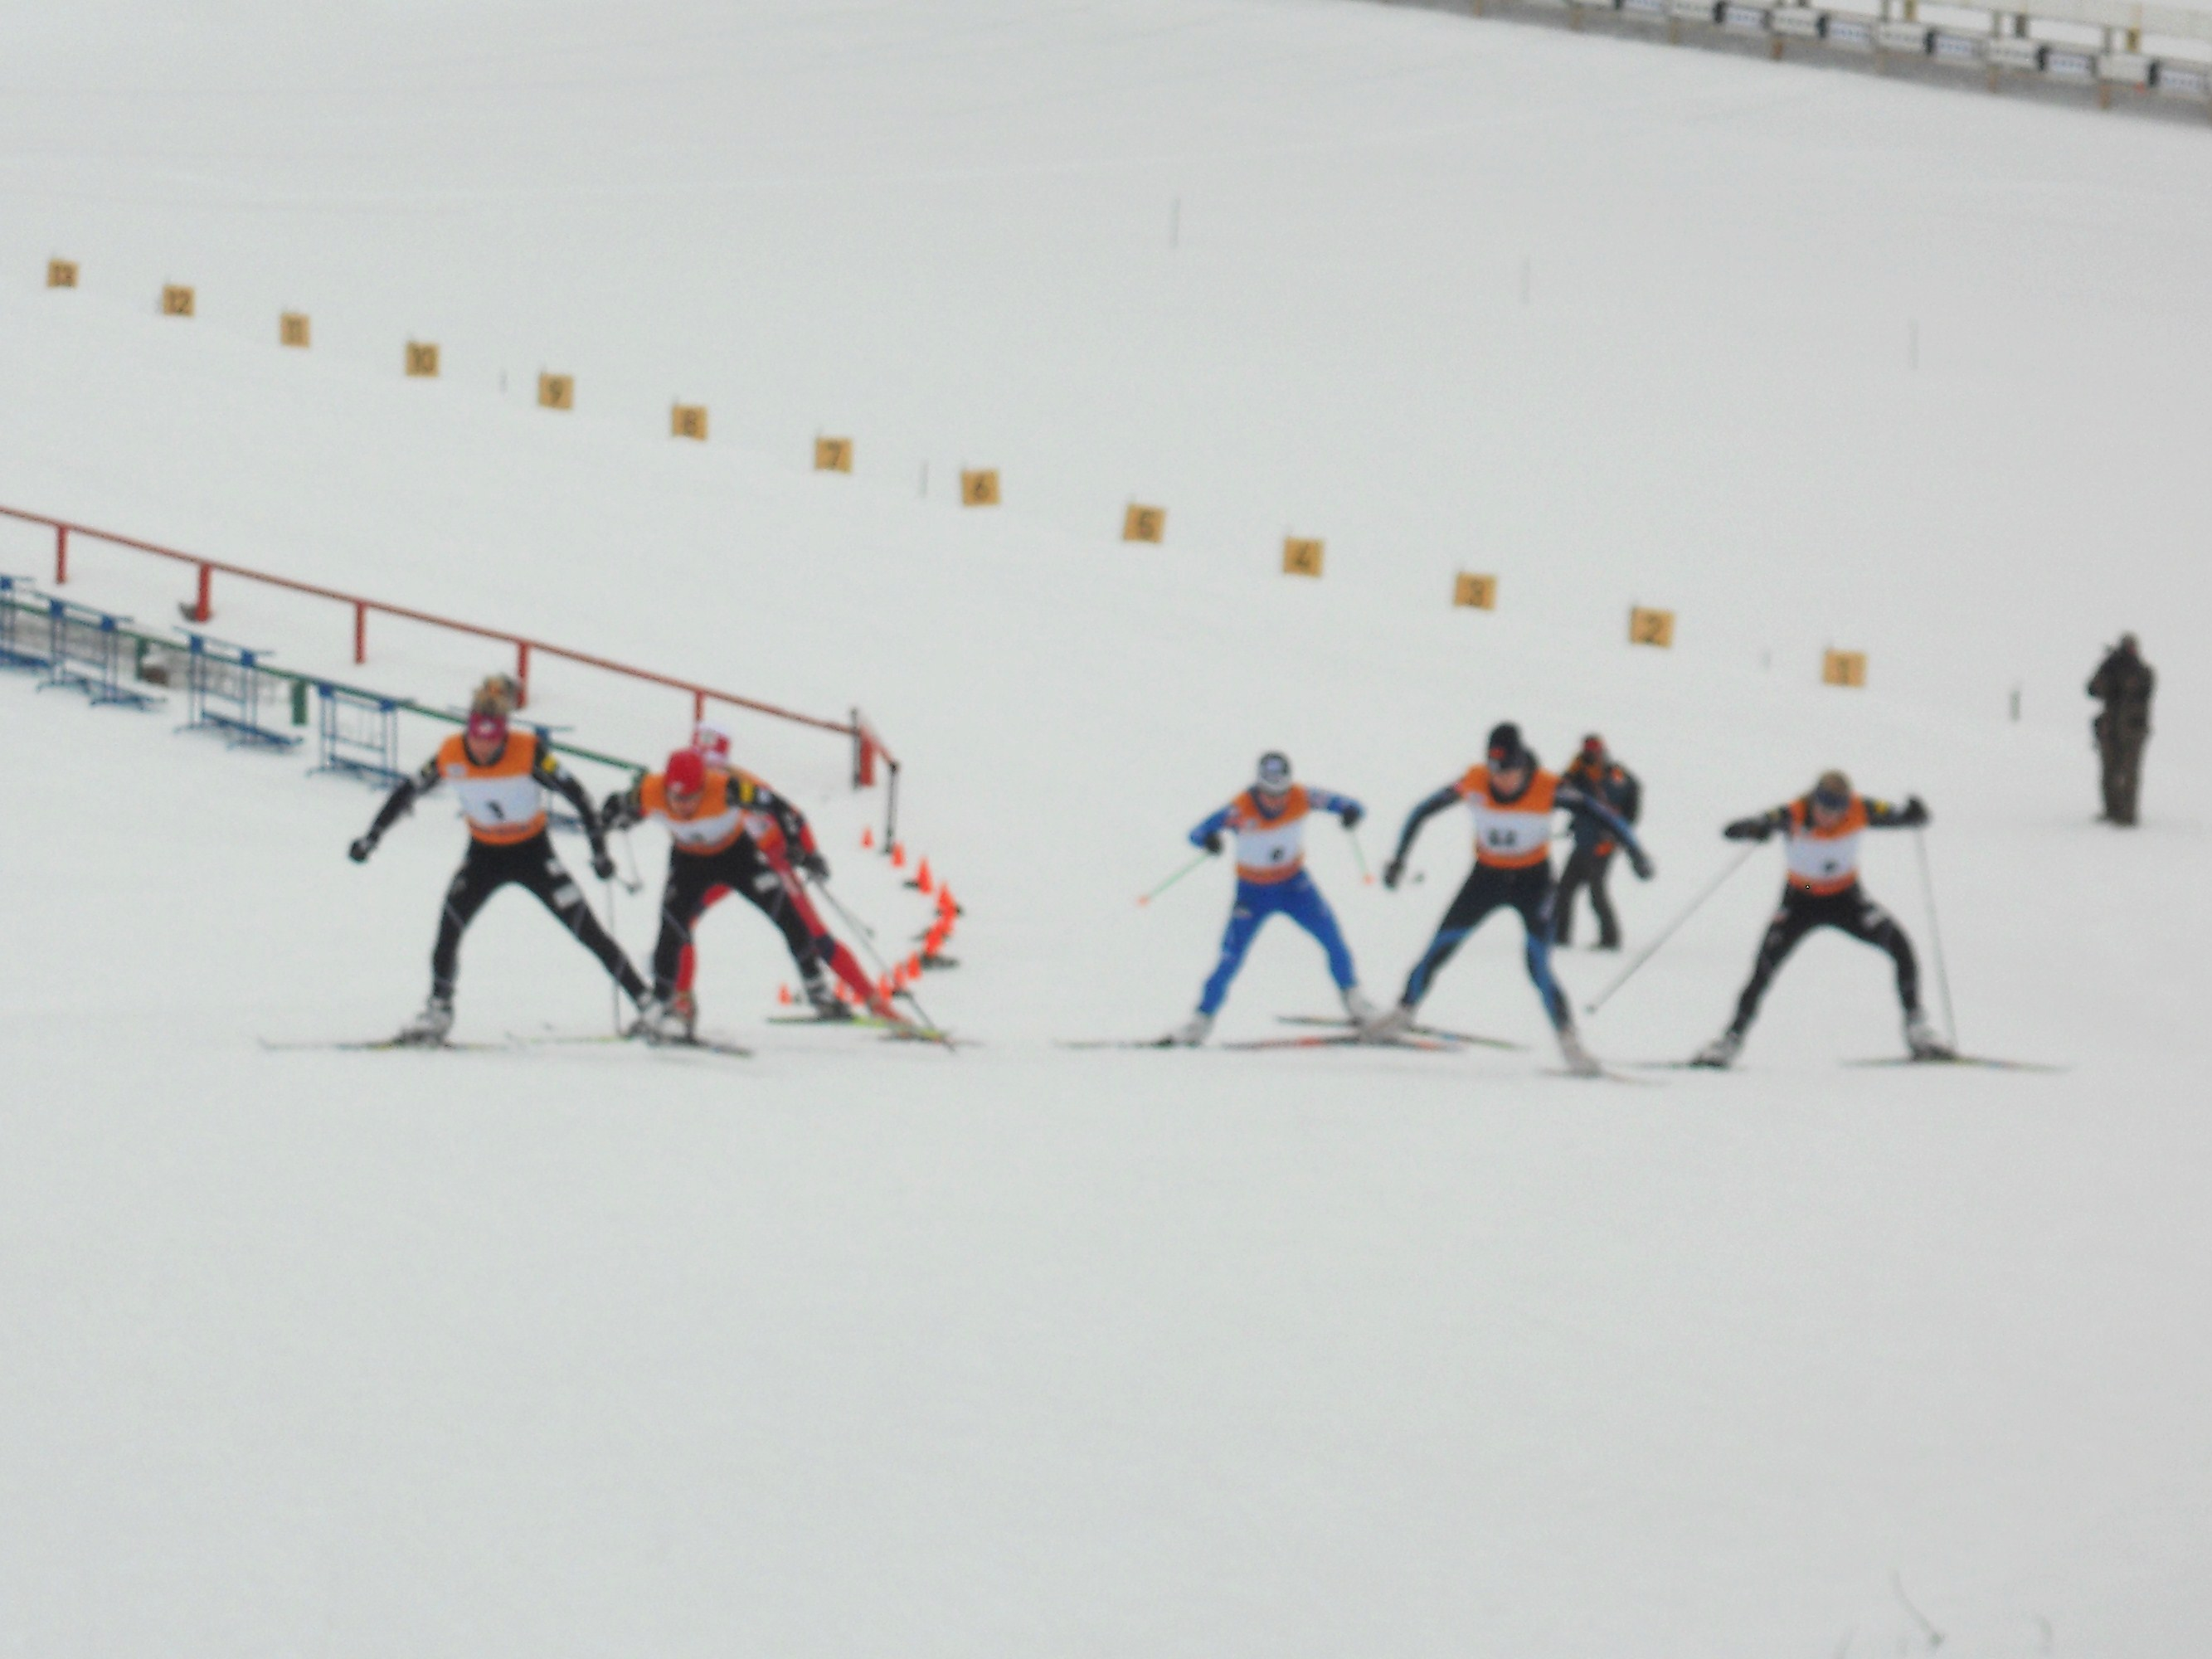 The semi-final for the sprint